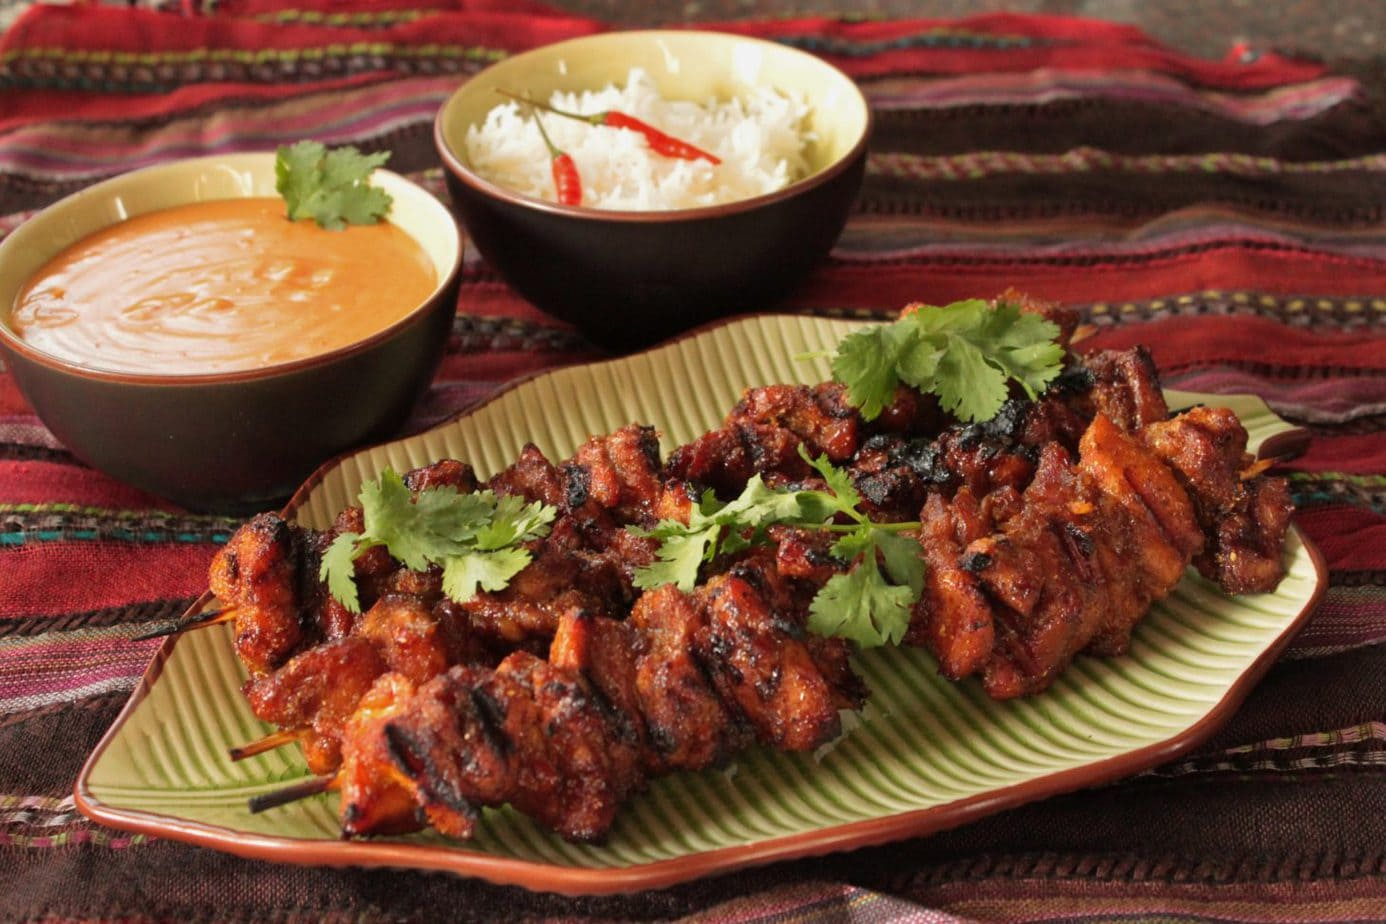 Get out your grilling sticks because you're going to want to try this great recipe for a Classic Thai street food...Chicken Satay. #chickenSatay #grilling #satay #foodonsticks